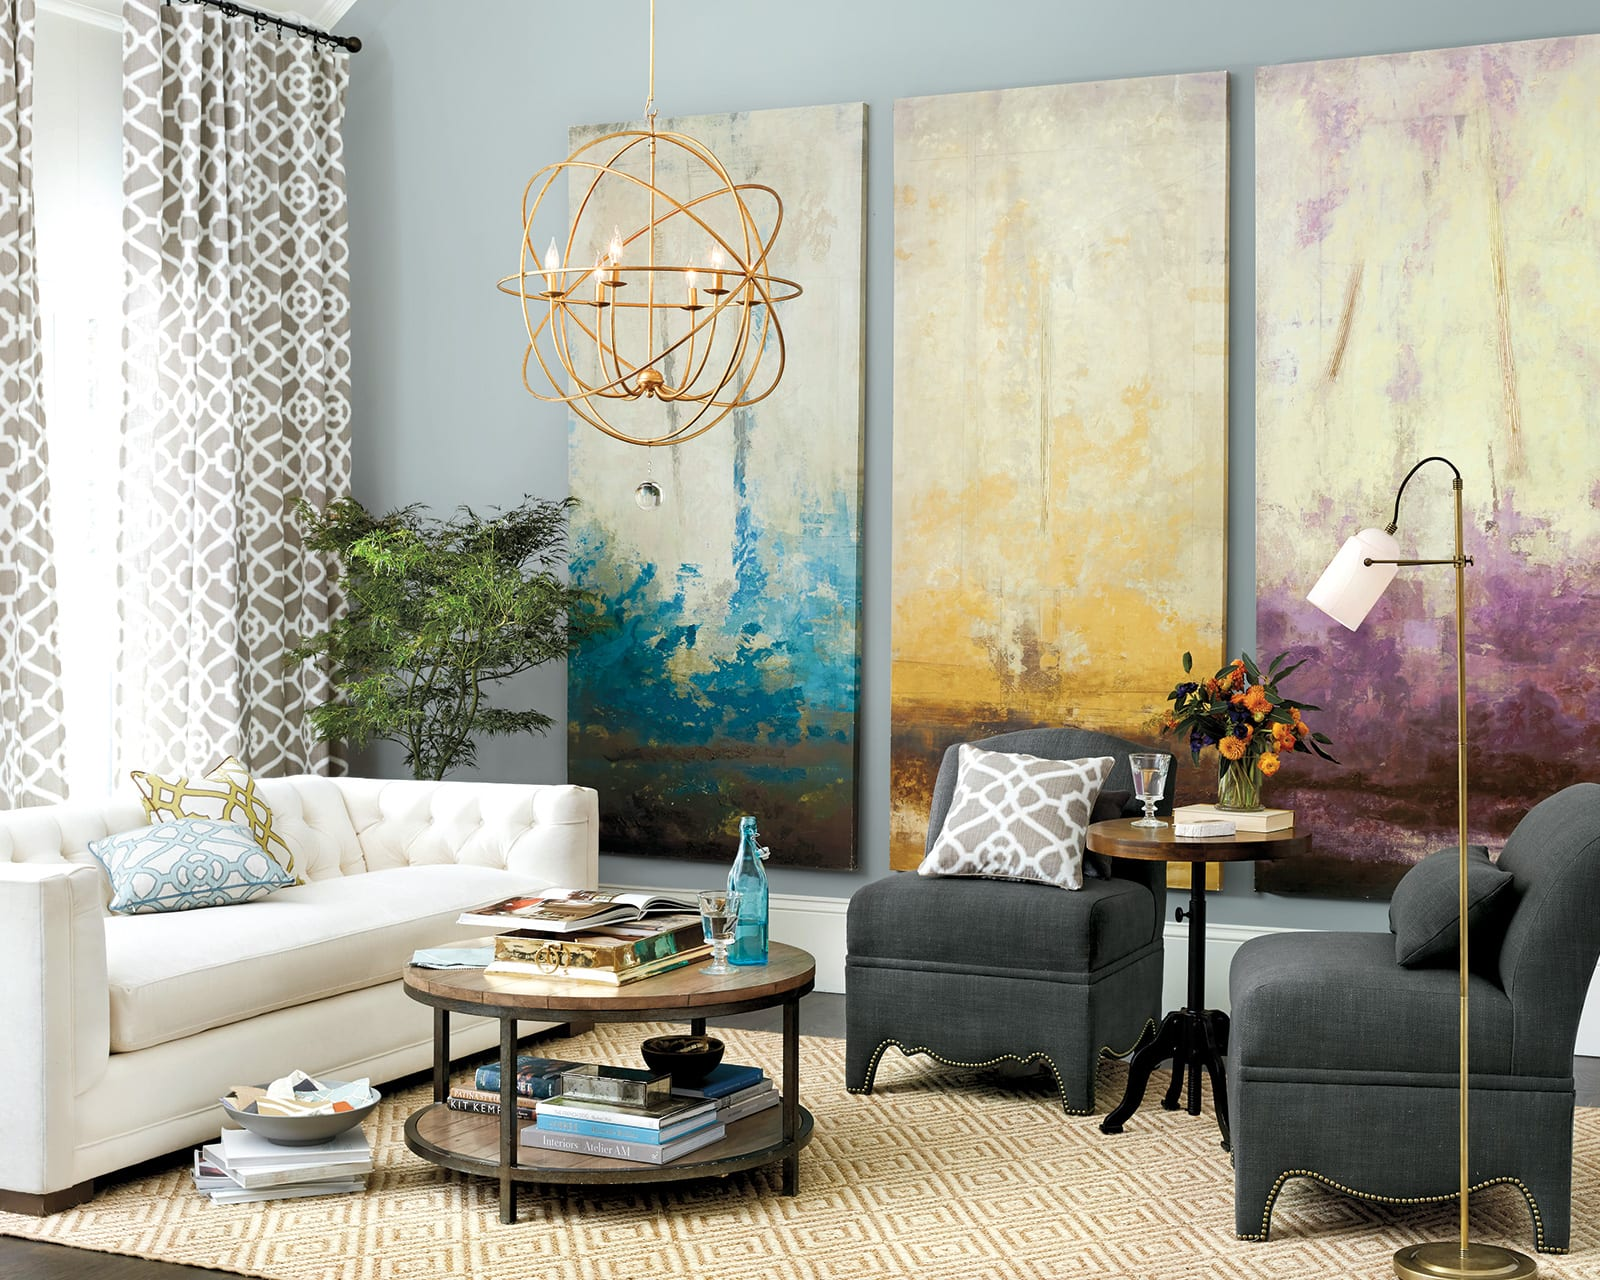 How To Decorate A Large Blank Wall 10 Ways To Fill A Blank Wall How To Decorate